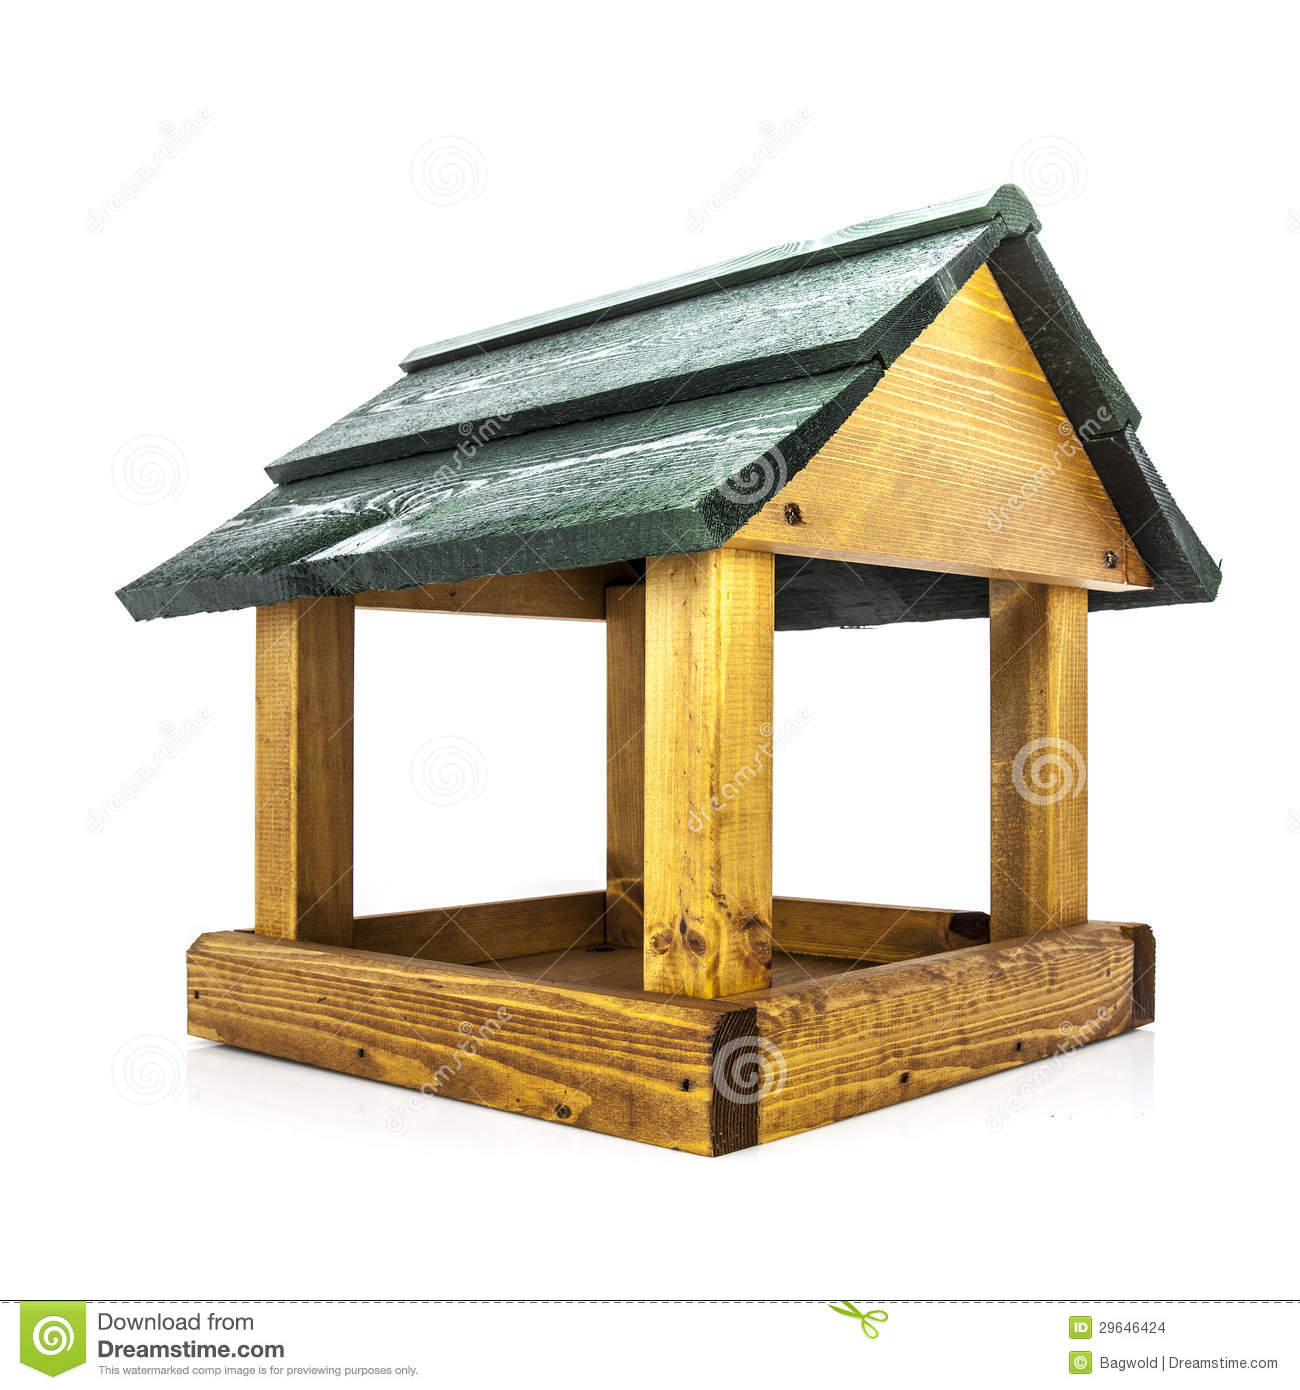 Woodworking industry trends bird house web design for How to make a wooden bird feeder